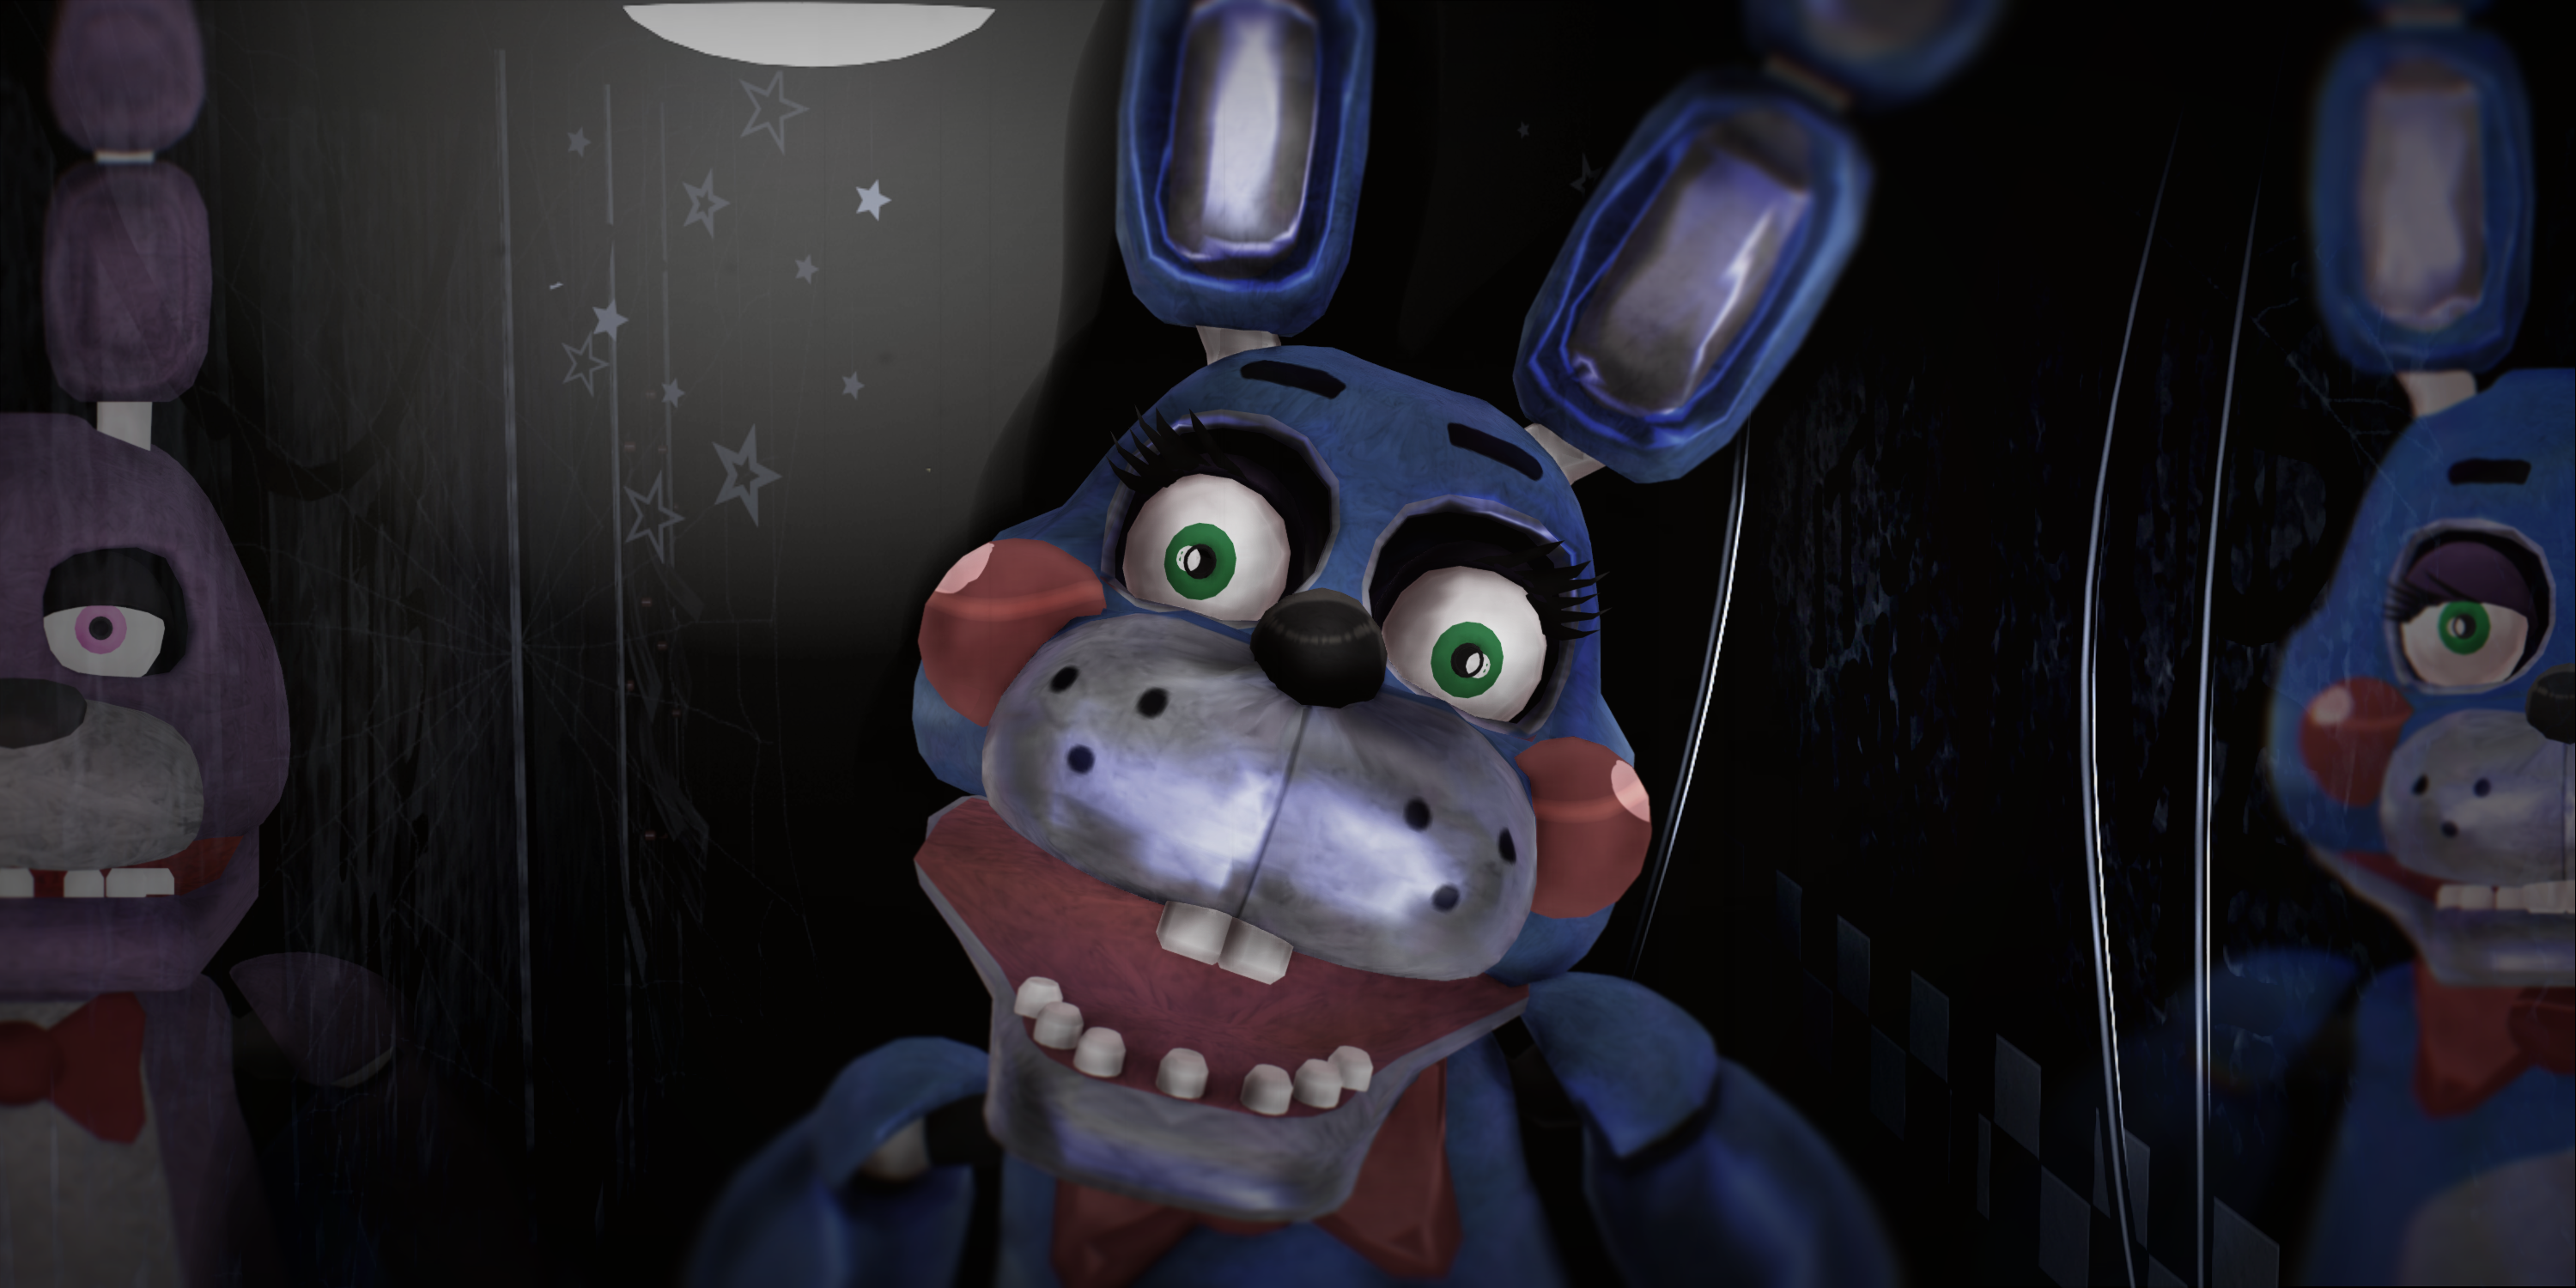 Five Nights At Freddy's Bonnie Animated five nights at freddy's : bonnie 2.0 dlnipahmmd on